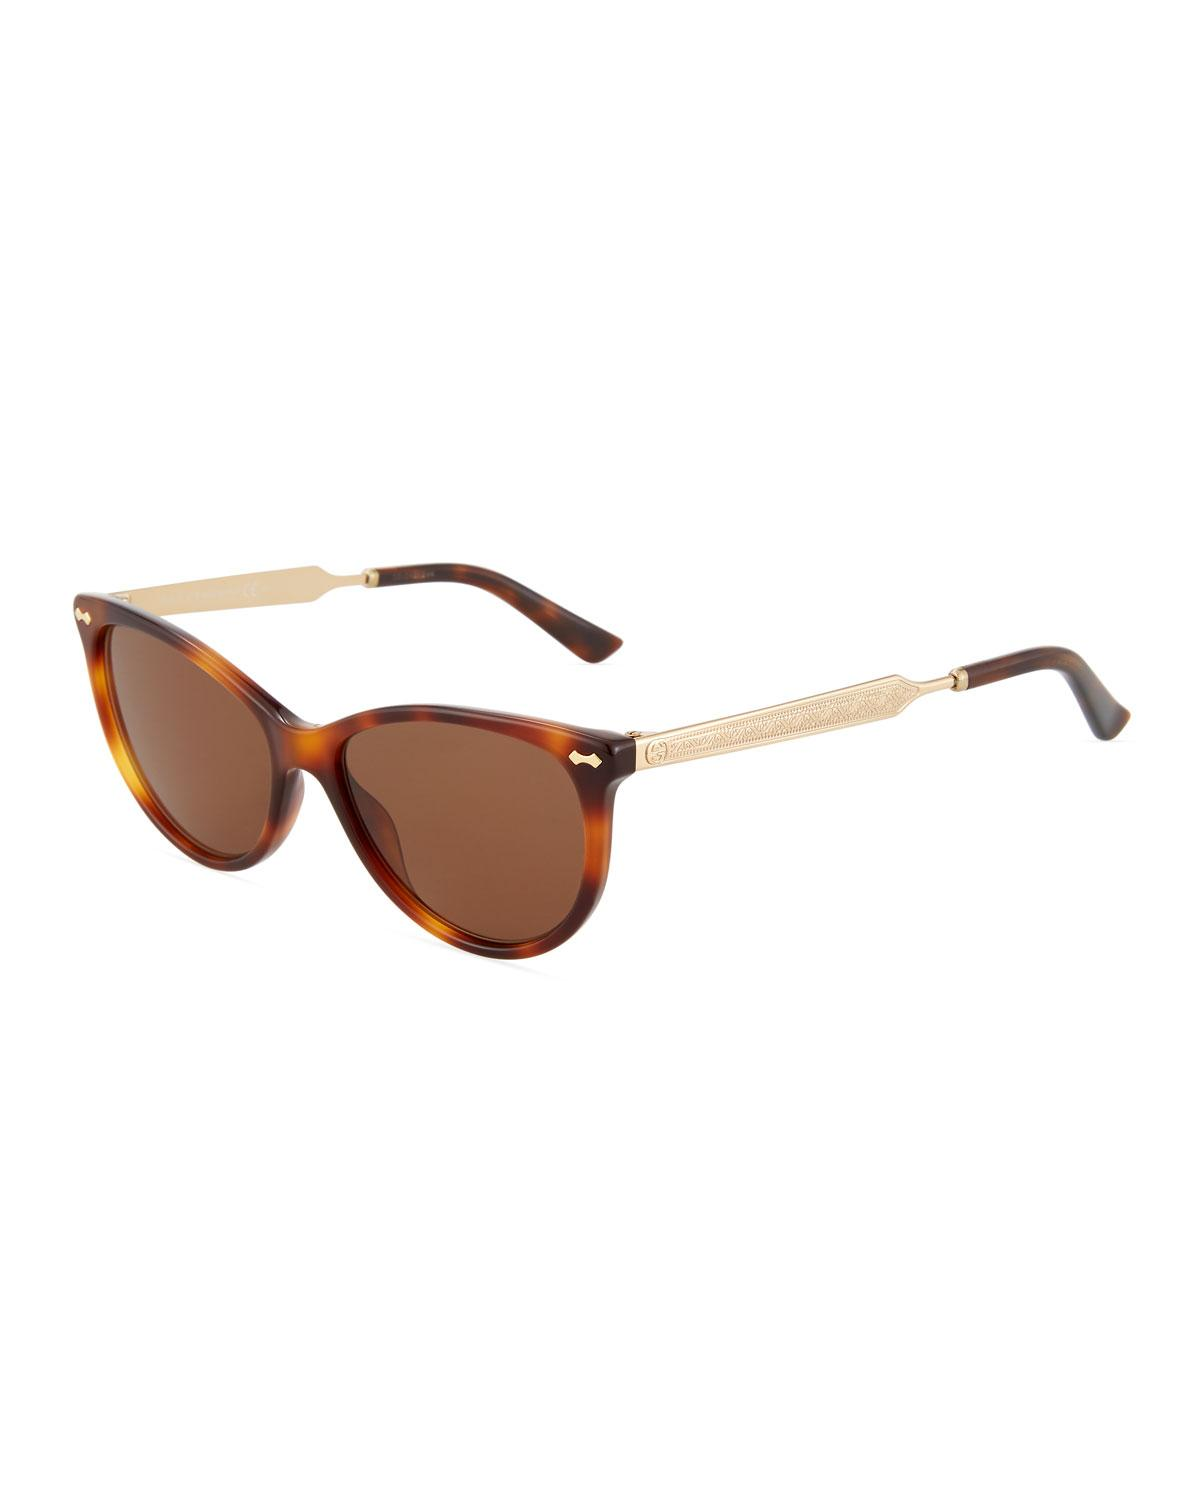 Gucci Round Plastic/Metal Sunglasses In Gold